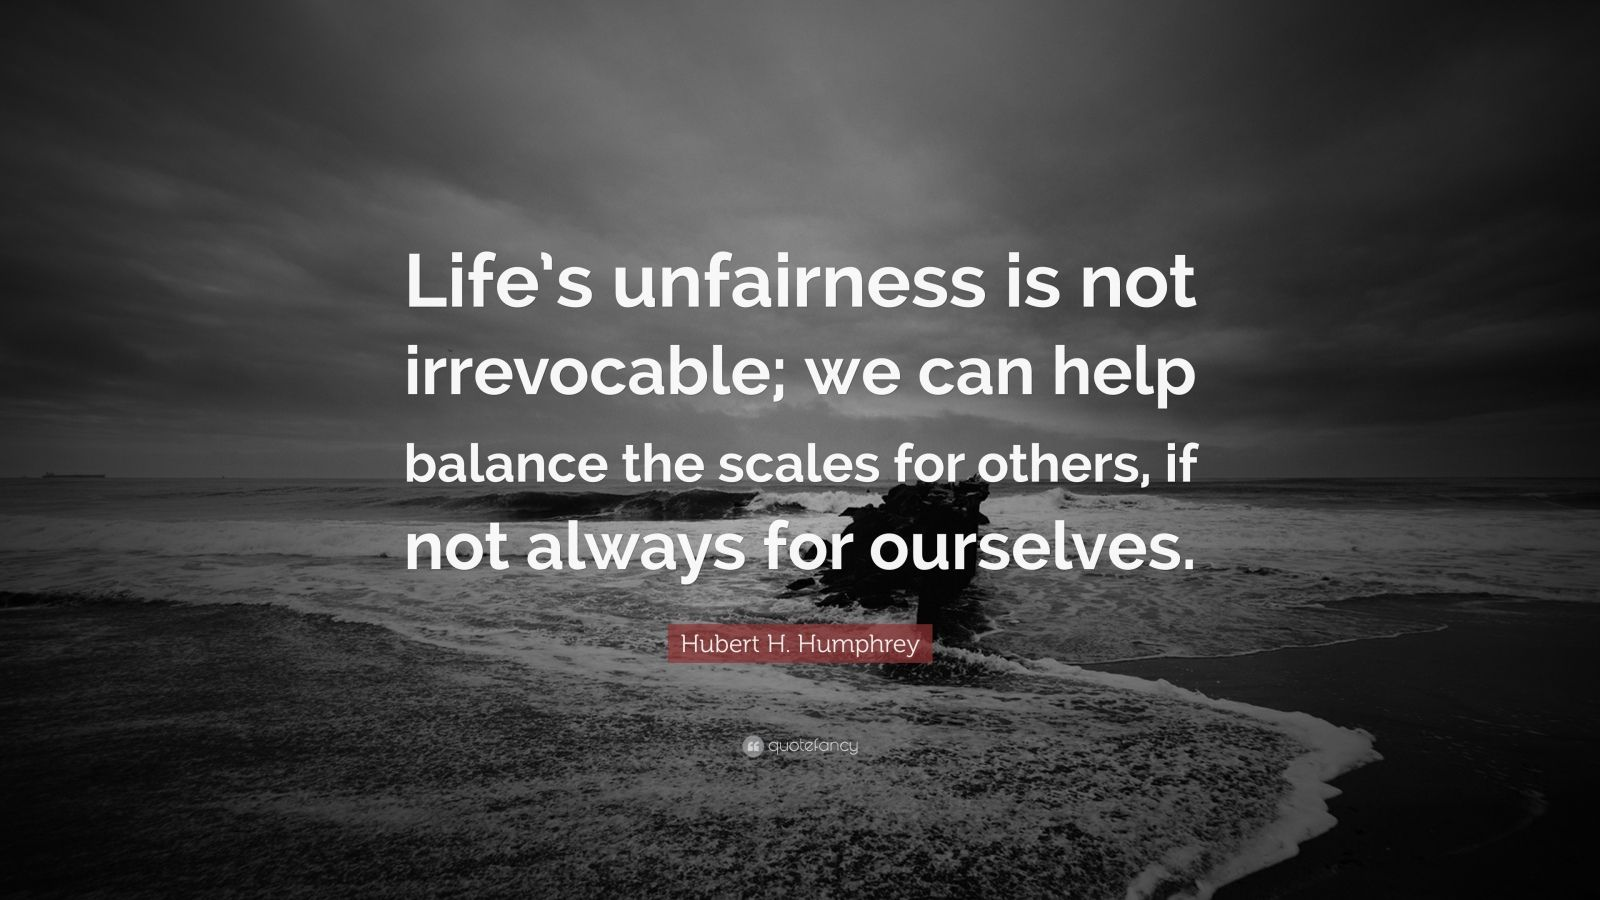 "Hubert H. Humphrey Quote: ""Life's unfairness is not irrevocable; we can help balance the scales for others, if not always for ourselves."""